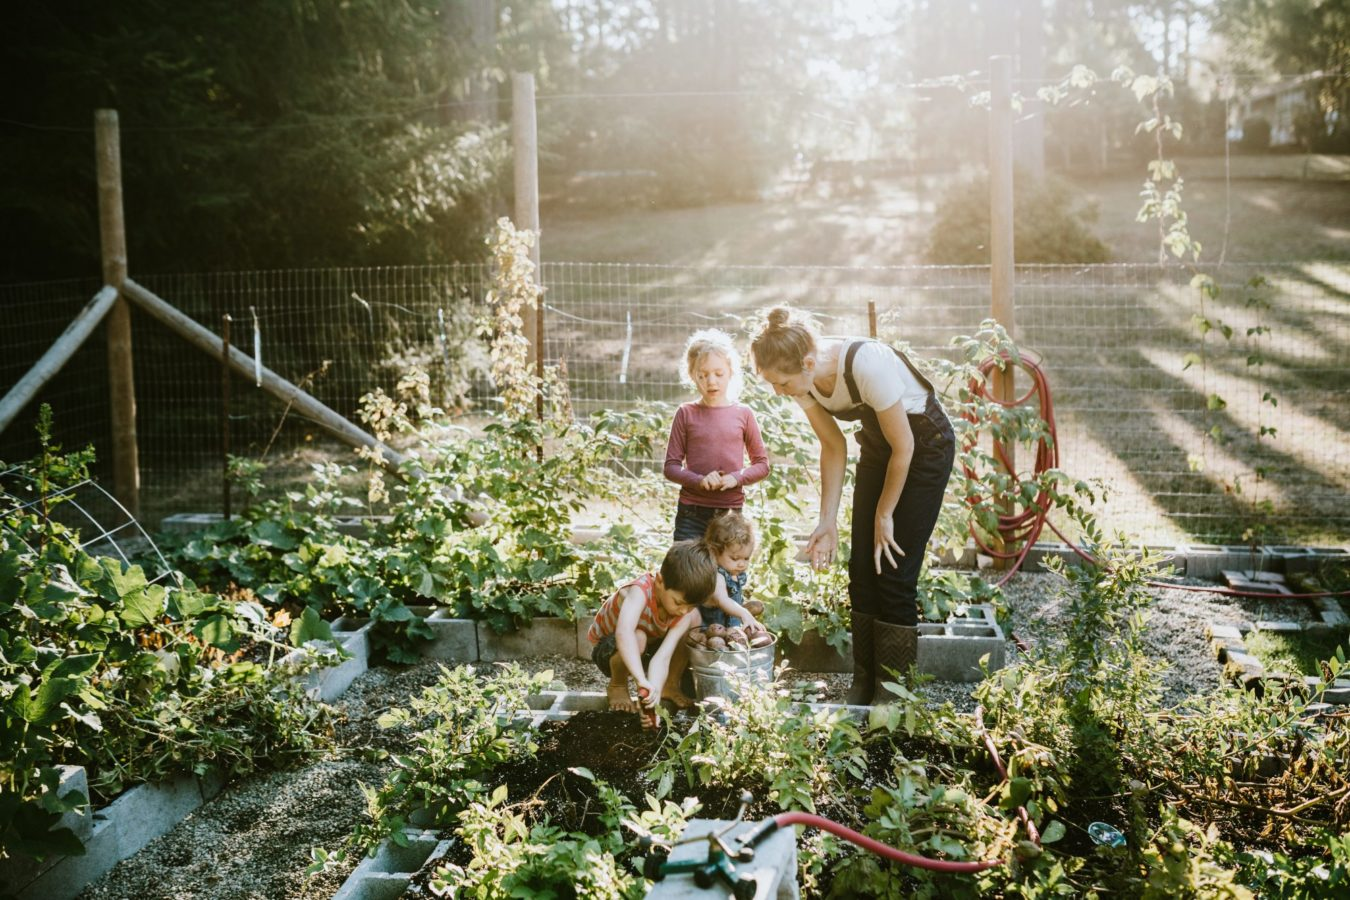 How to keep maggots and flies out of your vegetable garden